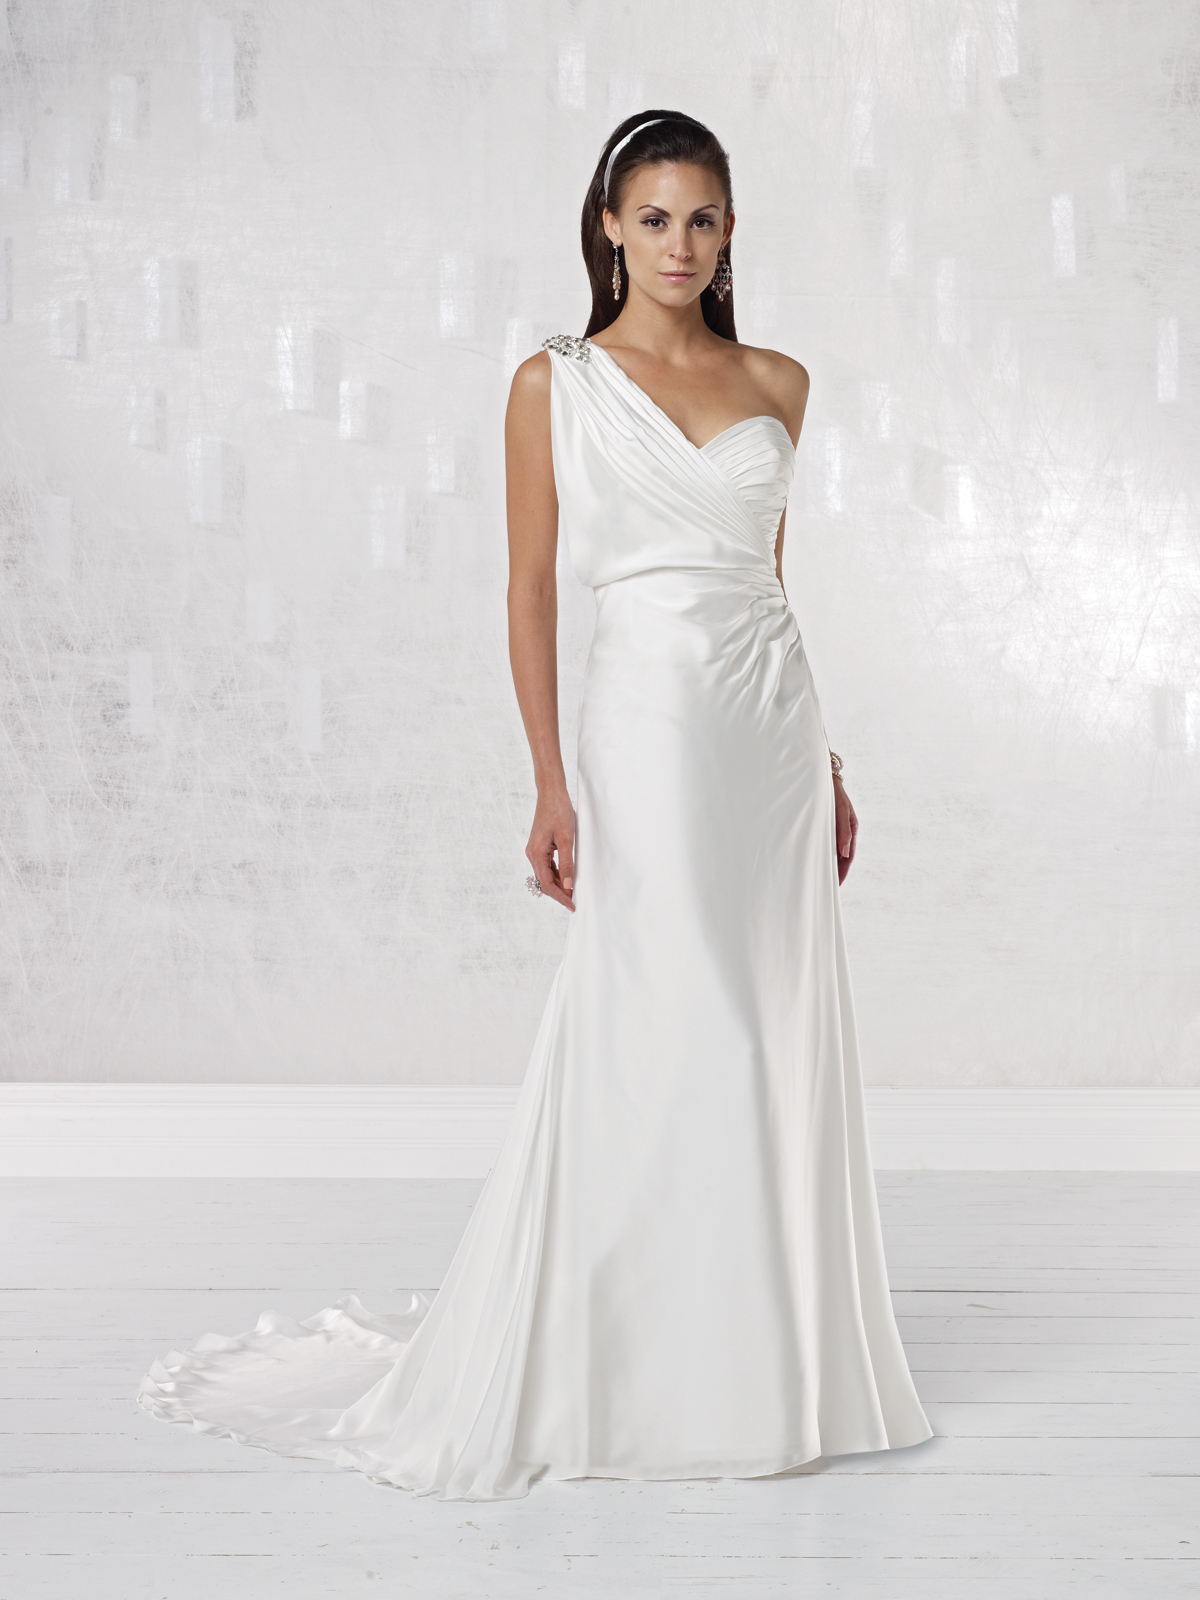 Celebrity Wedding Dresses Ireland : Celebrity wedding dresses ireland long